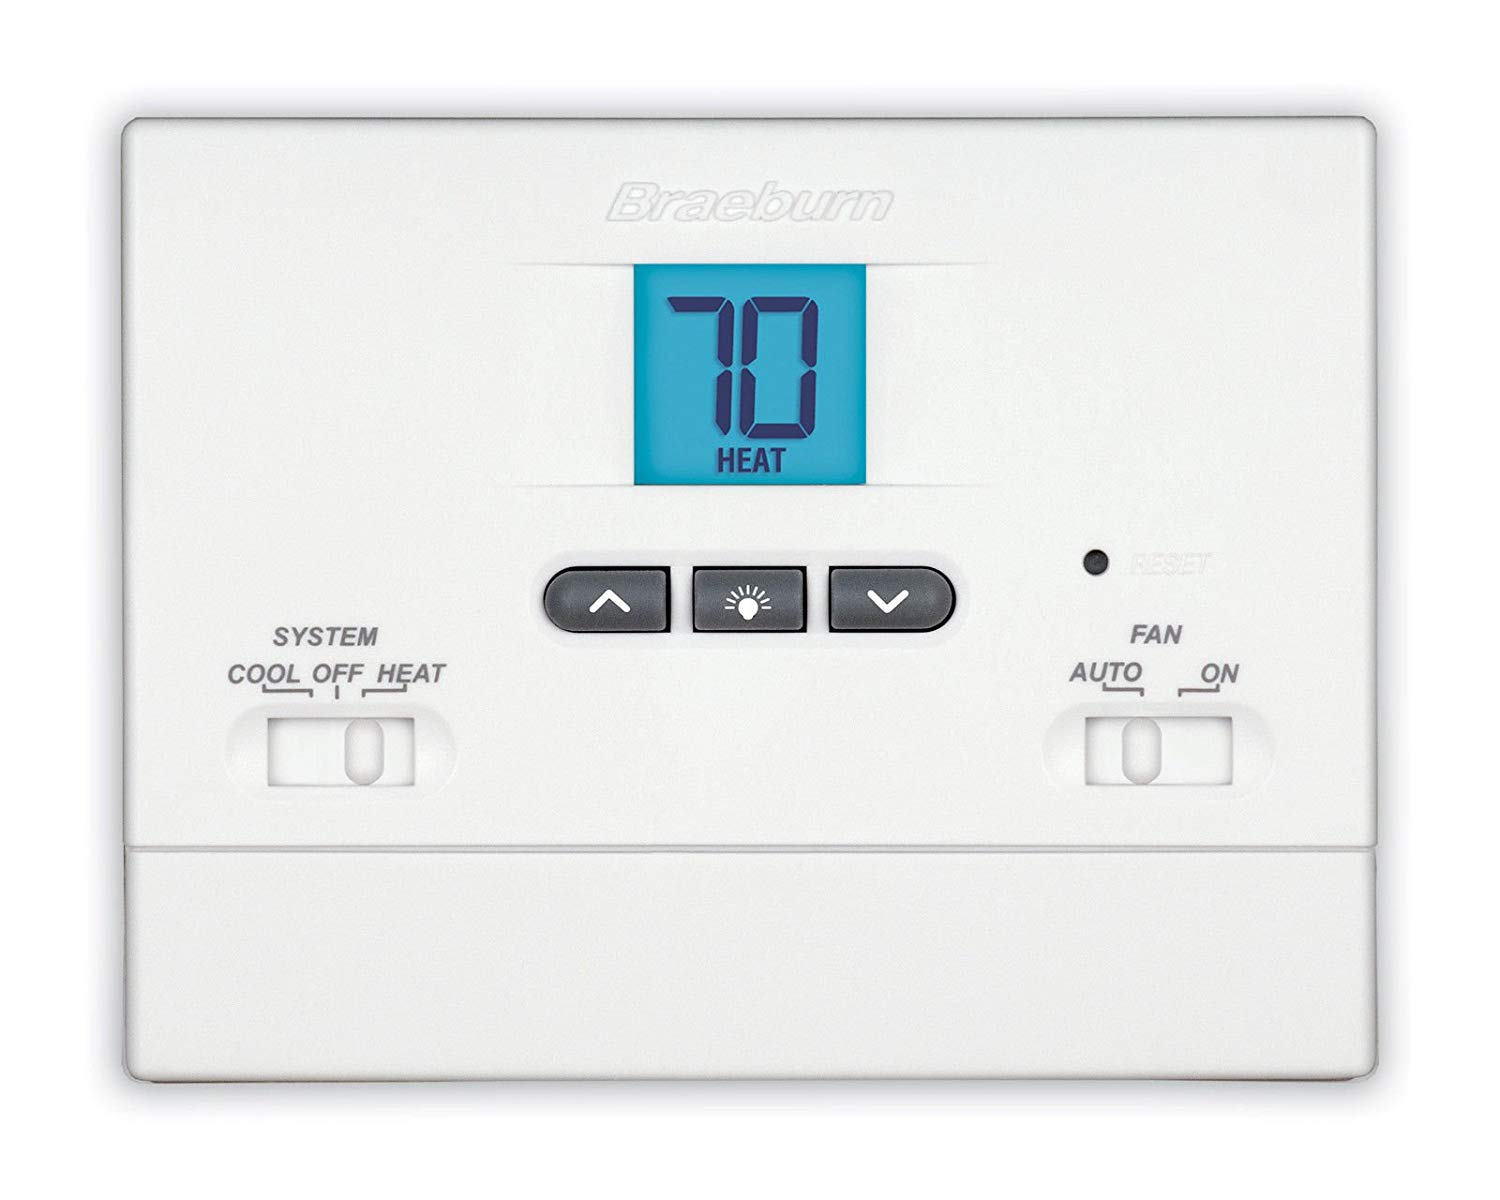 hight resolution of braeburn thermostat wiring diagram download braeburn 1000nc thermostat value non programmable 1h 1c programmable household